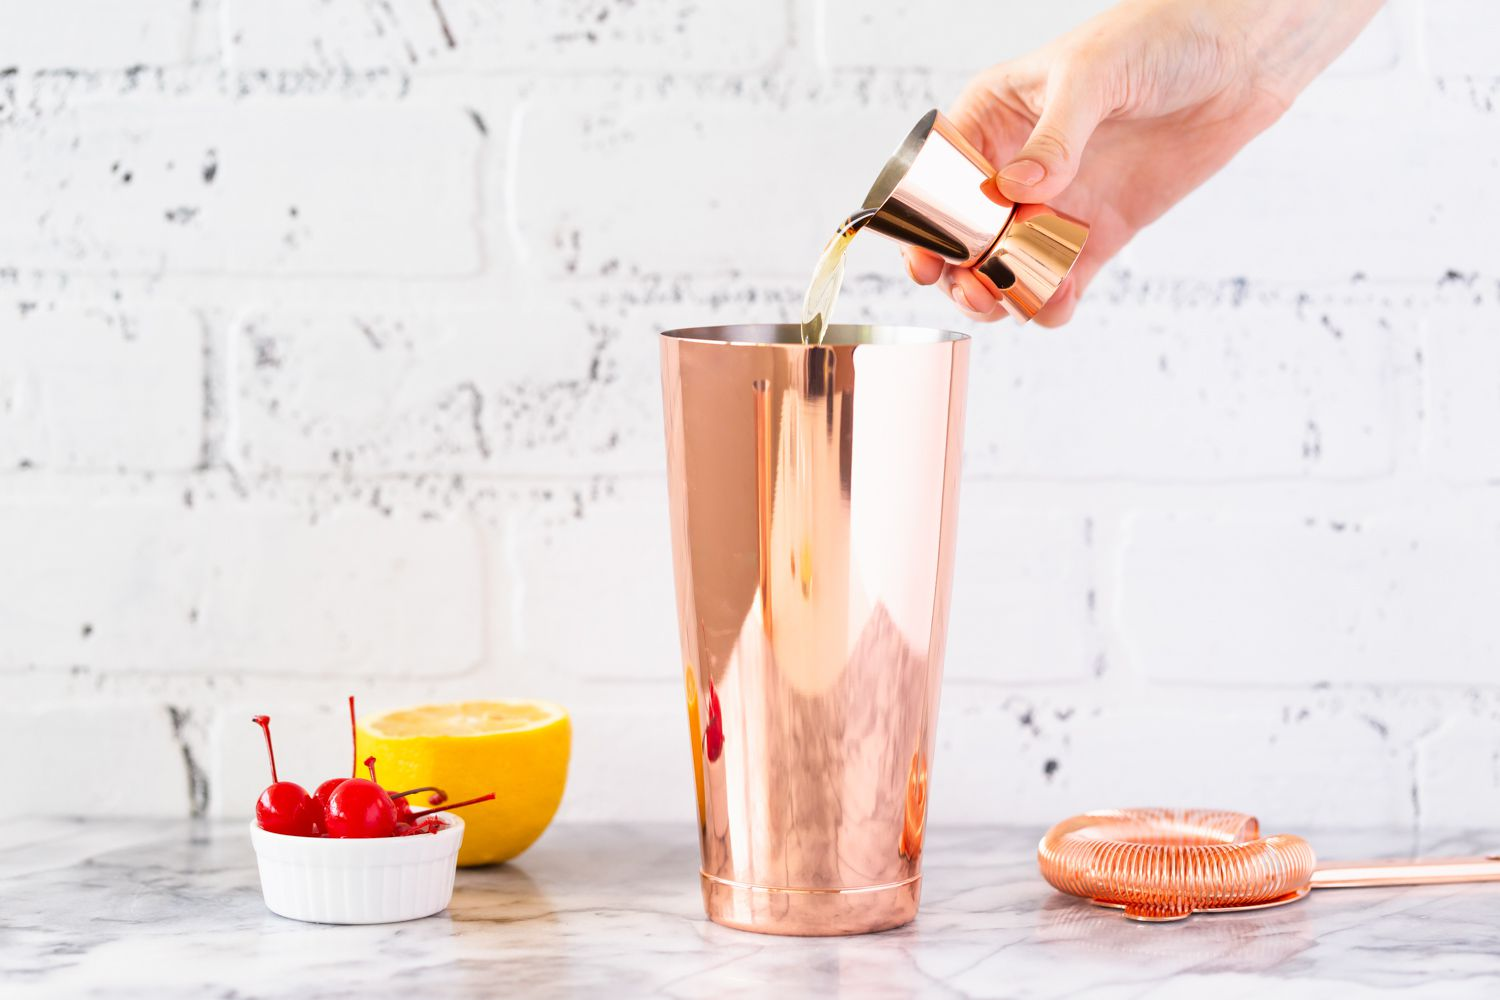 Adding ingredients to a whiskey sour in cocktail shaker